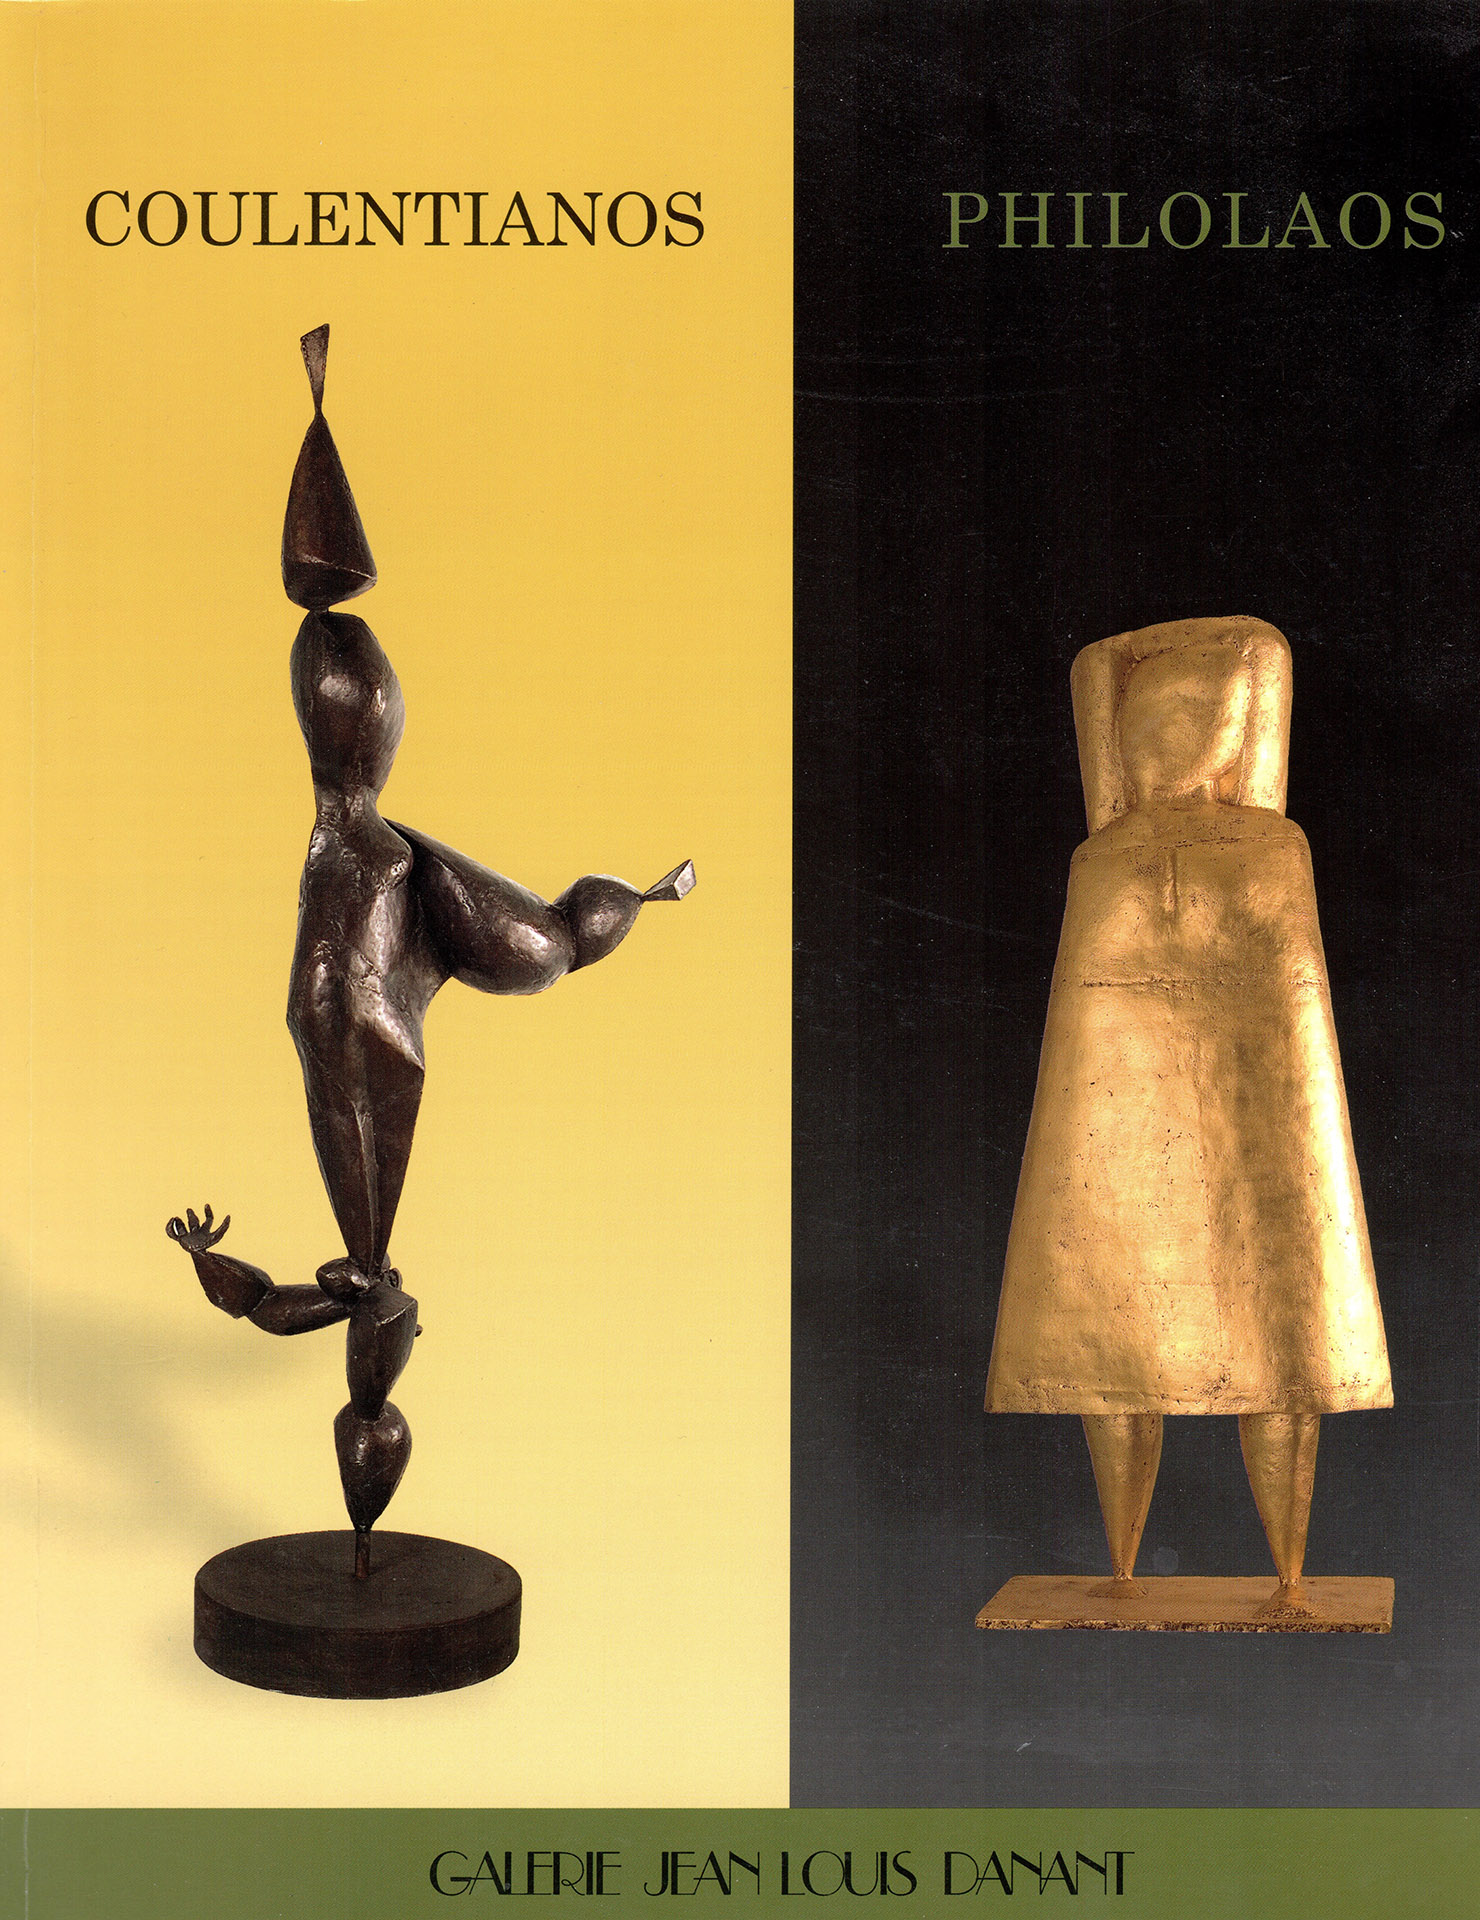 2. COULENTIANOS PHILOLAOS - DENYS ZACHAROPOULOS - GALERIE JEAN LOUIS DANANT